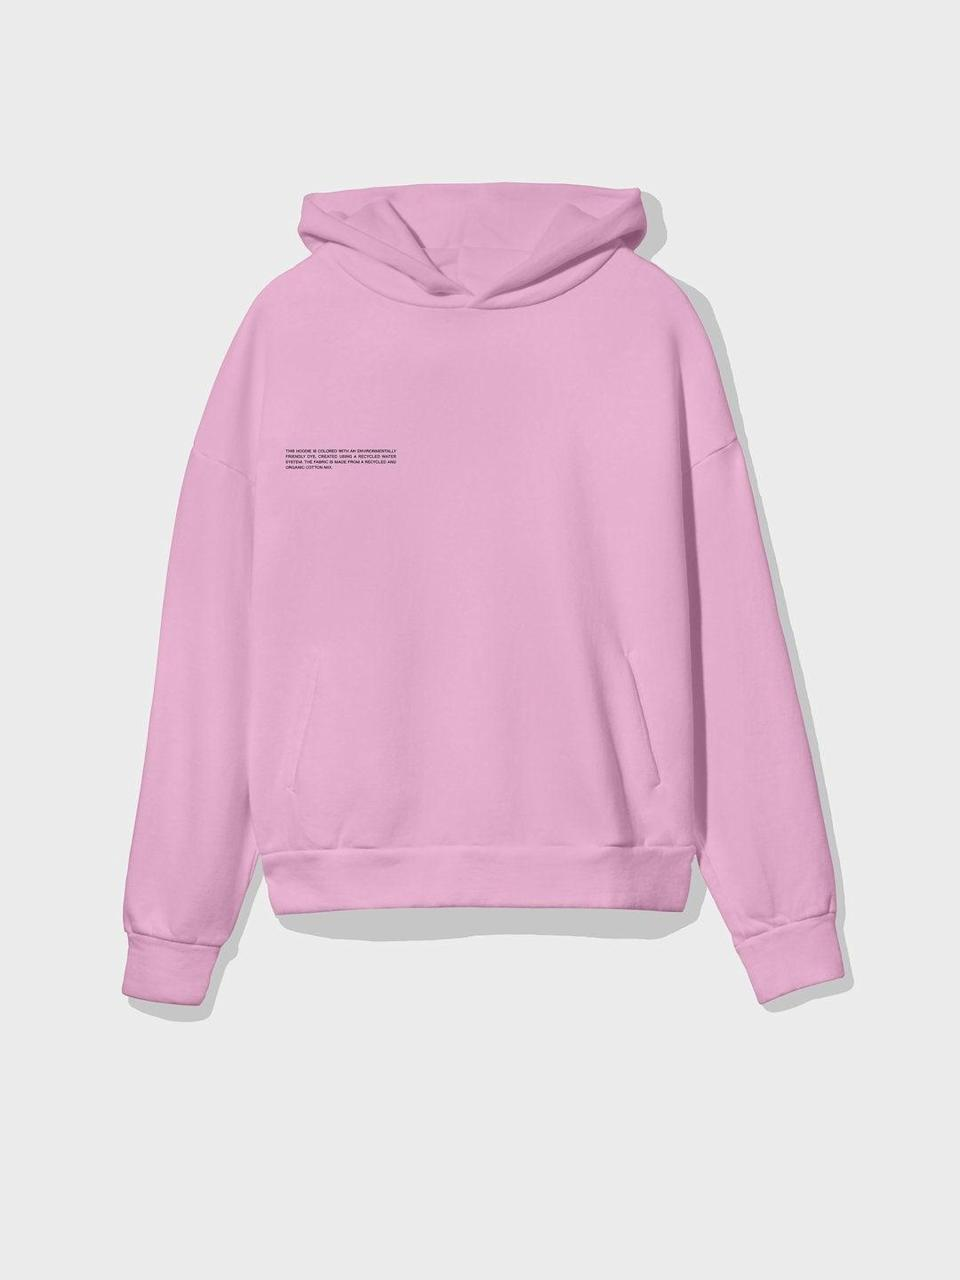 """<br><br><strong>Pangaia</strong> Heavyweight Recycled Cotton Hoodie, $, available at <a href=""""https://thepangaia.com/products/heavyweight-recycled-cotton-hoodie-rose-pink"""" rel=""""nofollow noopener"""" target=""""_blank"""" data-ylk=""""slk:Pangaia"""" class=""""link rapid-noclick-resp"""">Pangaia</a>"""